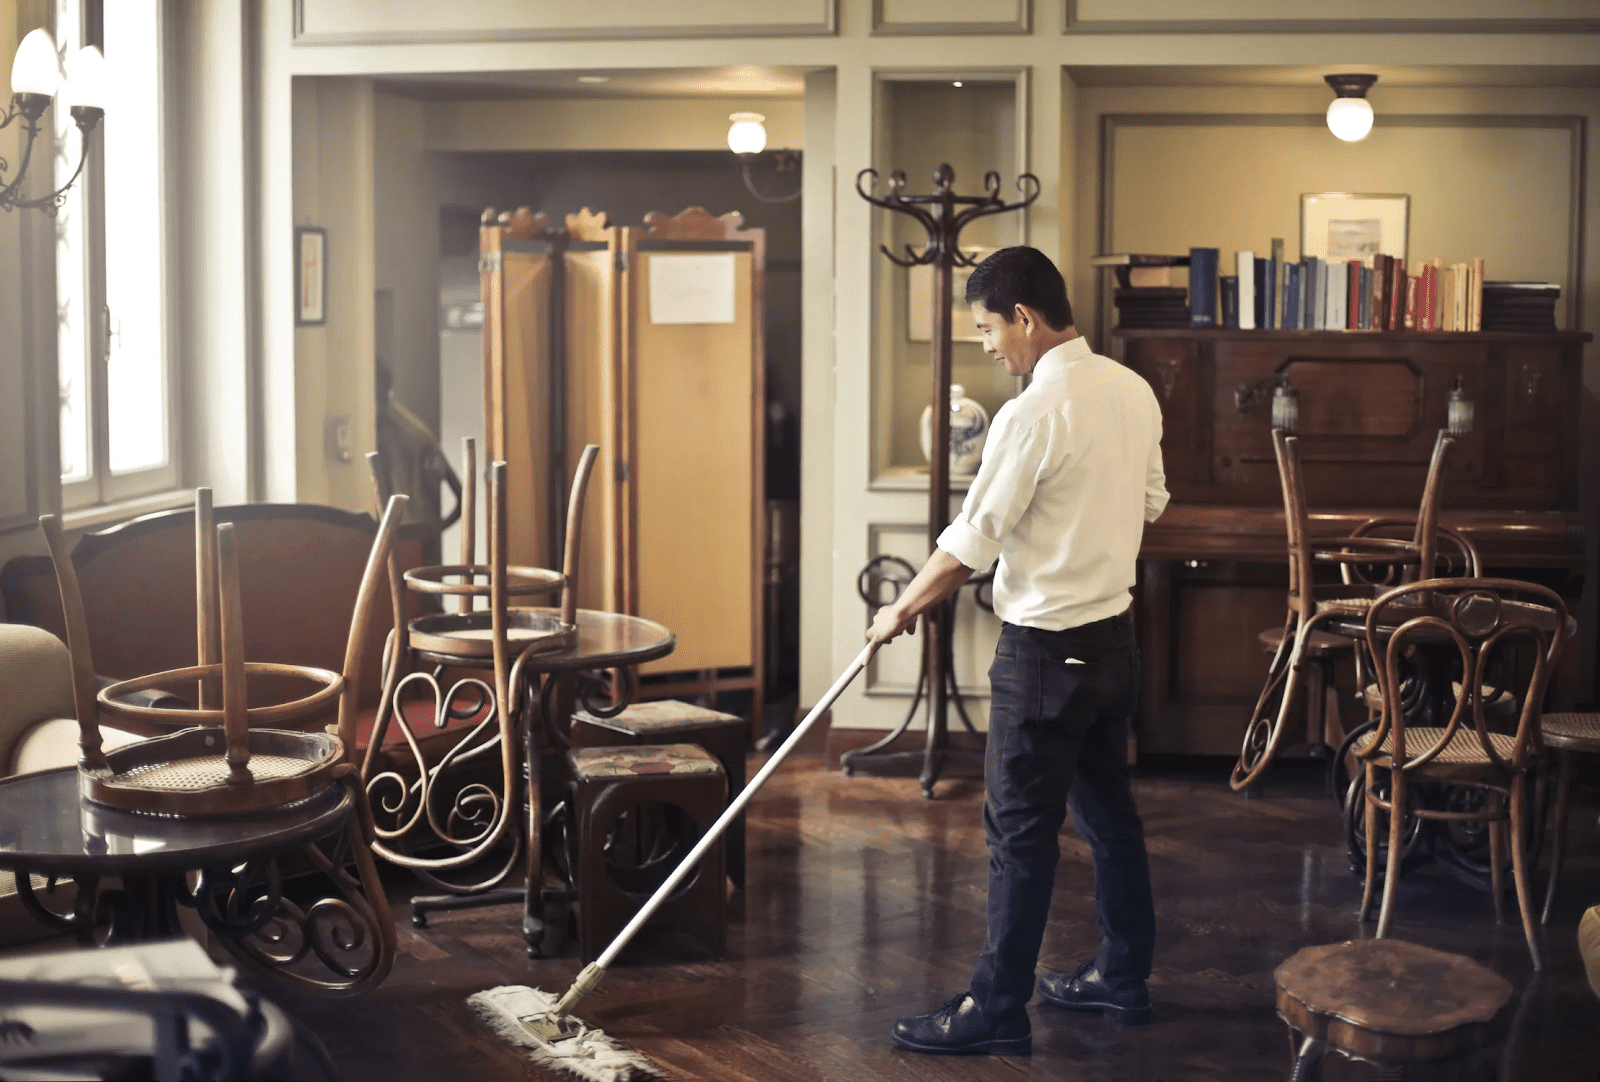 Man practicing how to clean a restaurant with a mop